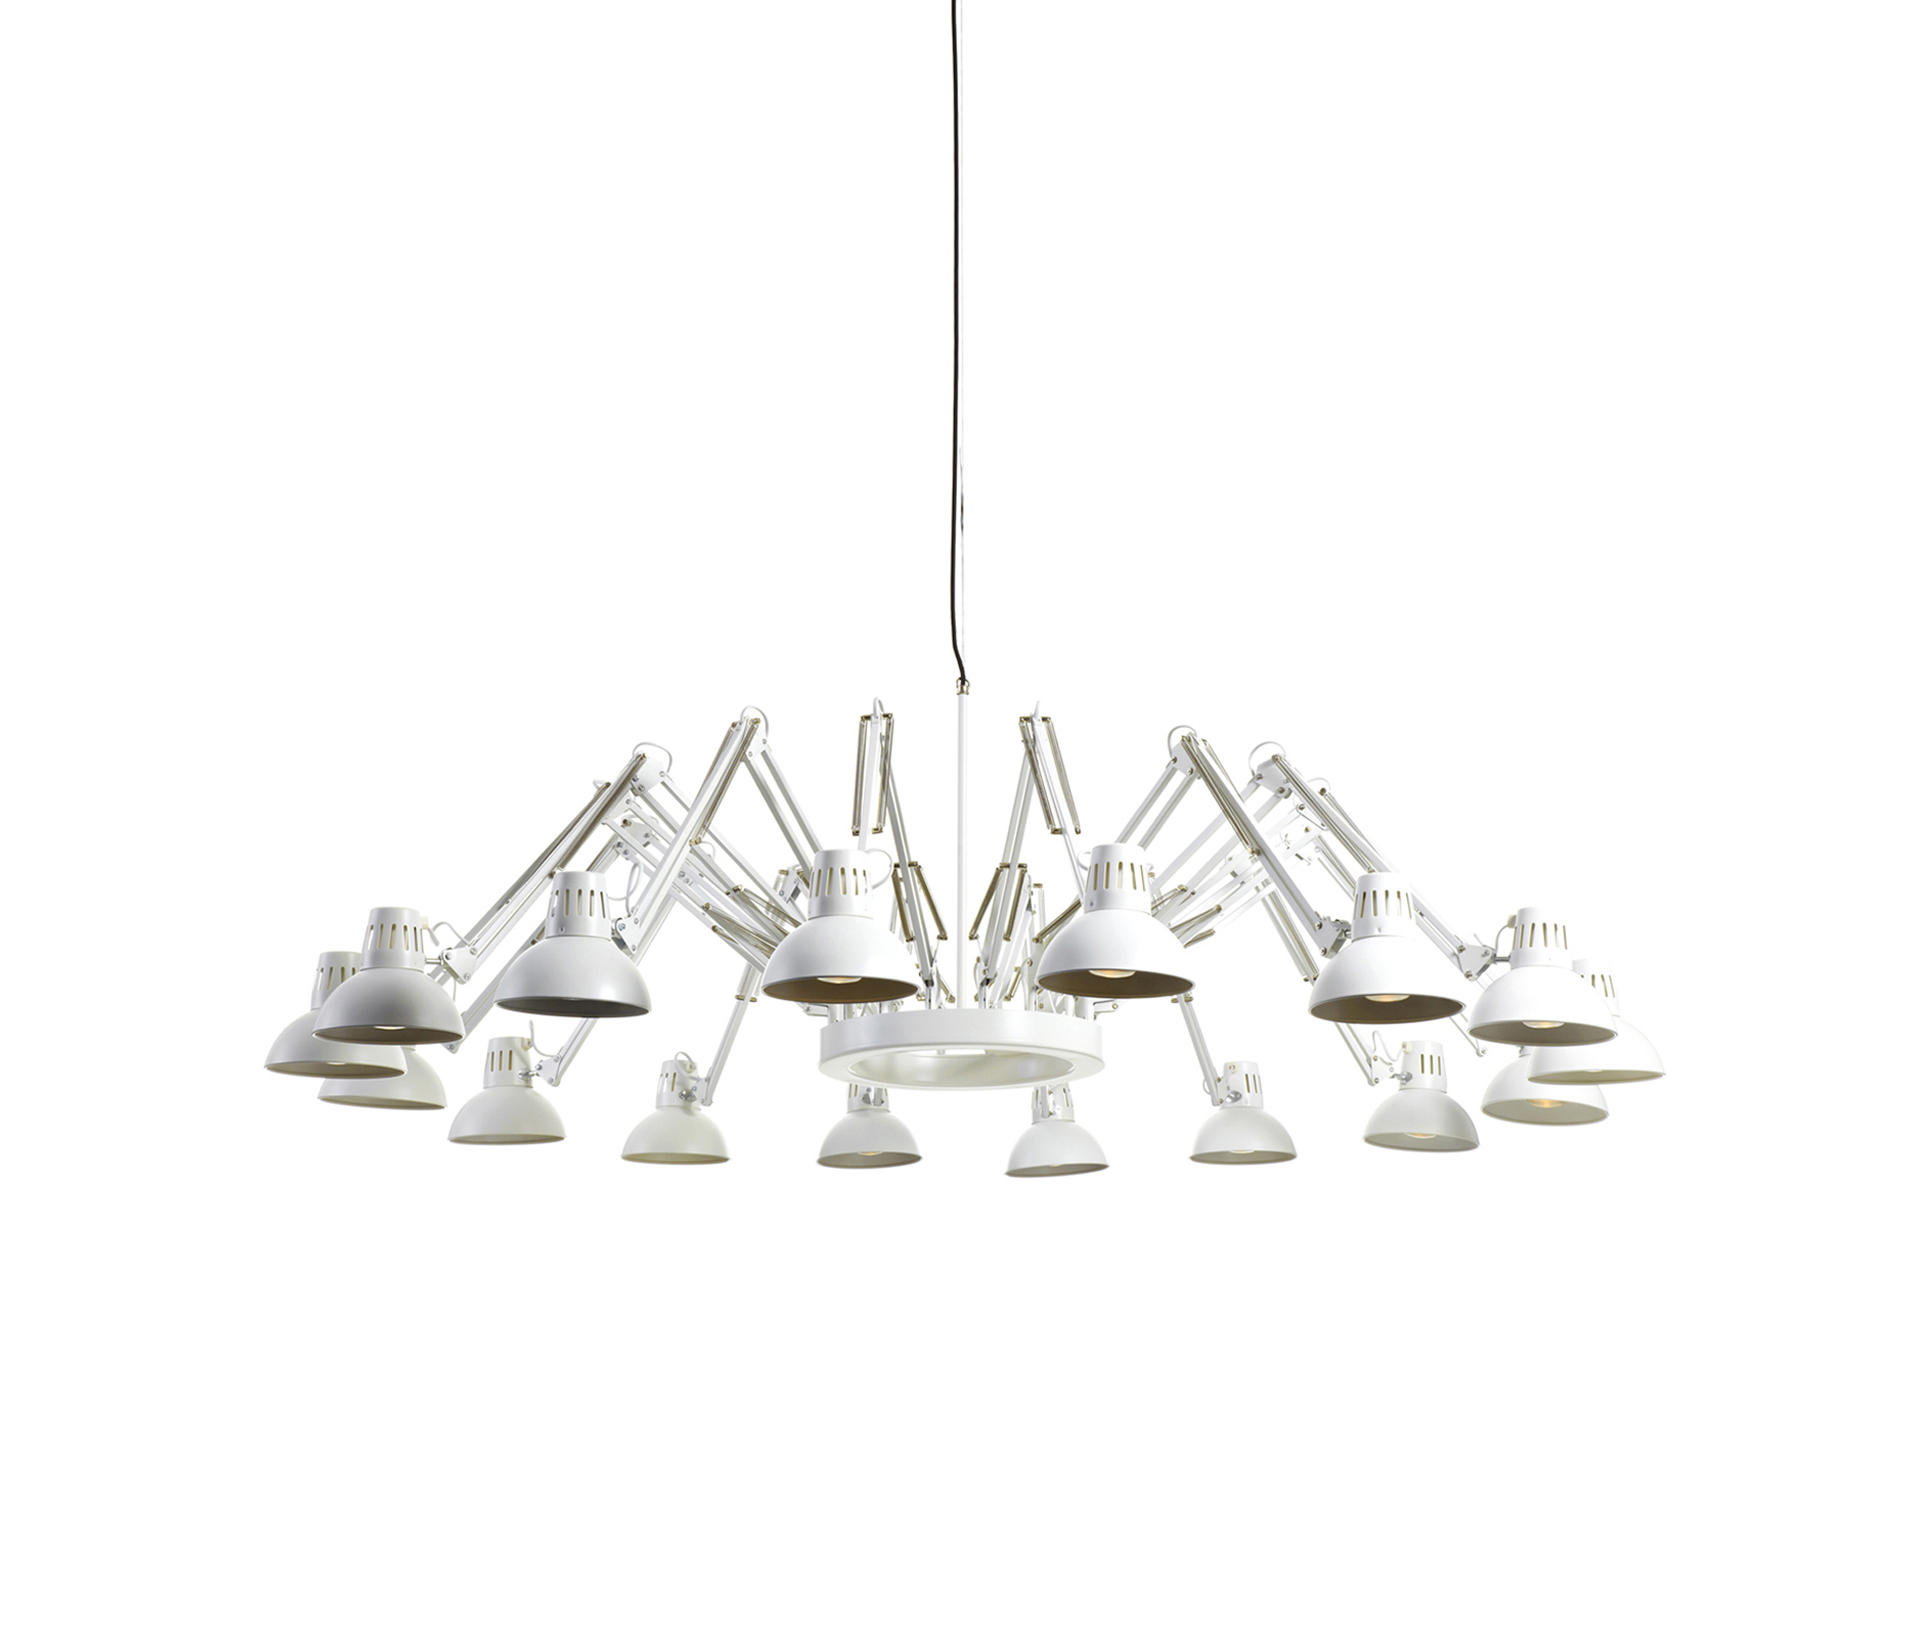 dear ingo Pendant light by moooi | Suspended lights ...  sc 1 st  Architonic & DEAR INGO PENDANT LIGHT - Suspended lights from moooi | Architonic